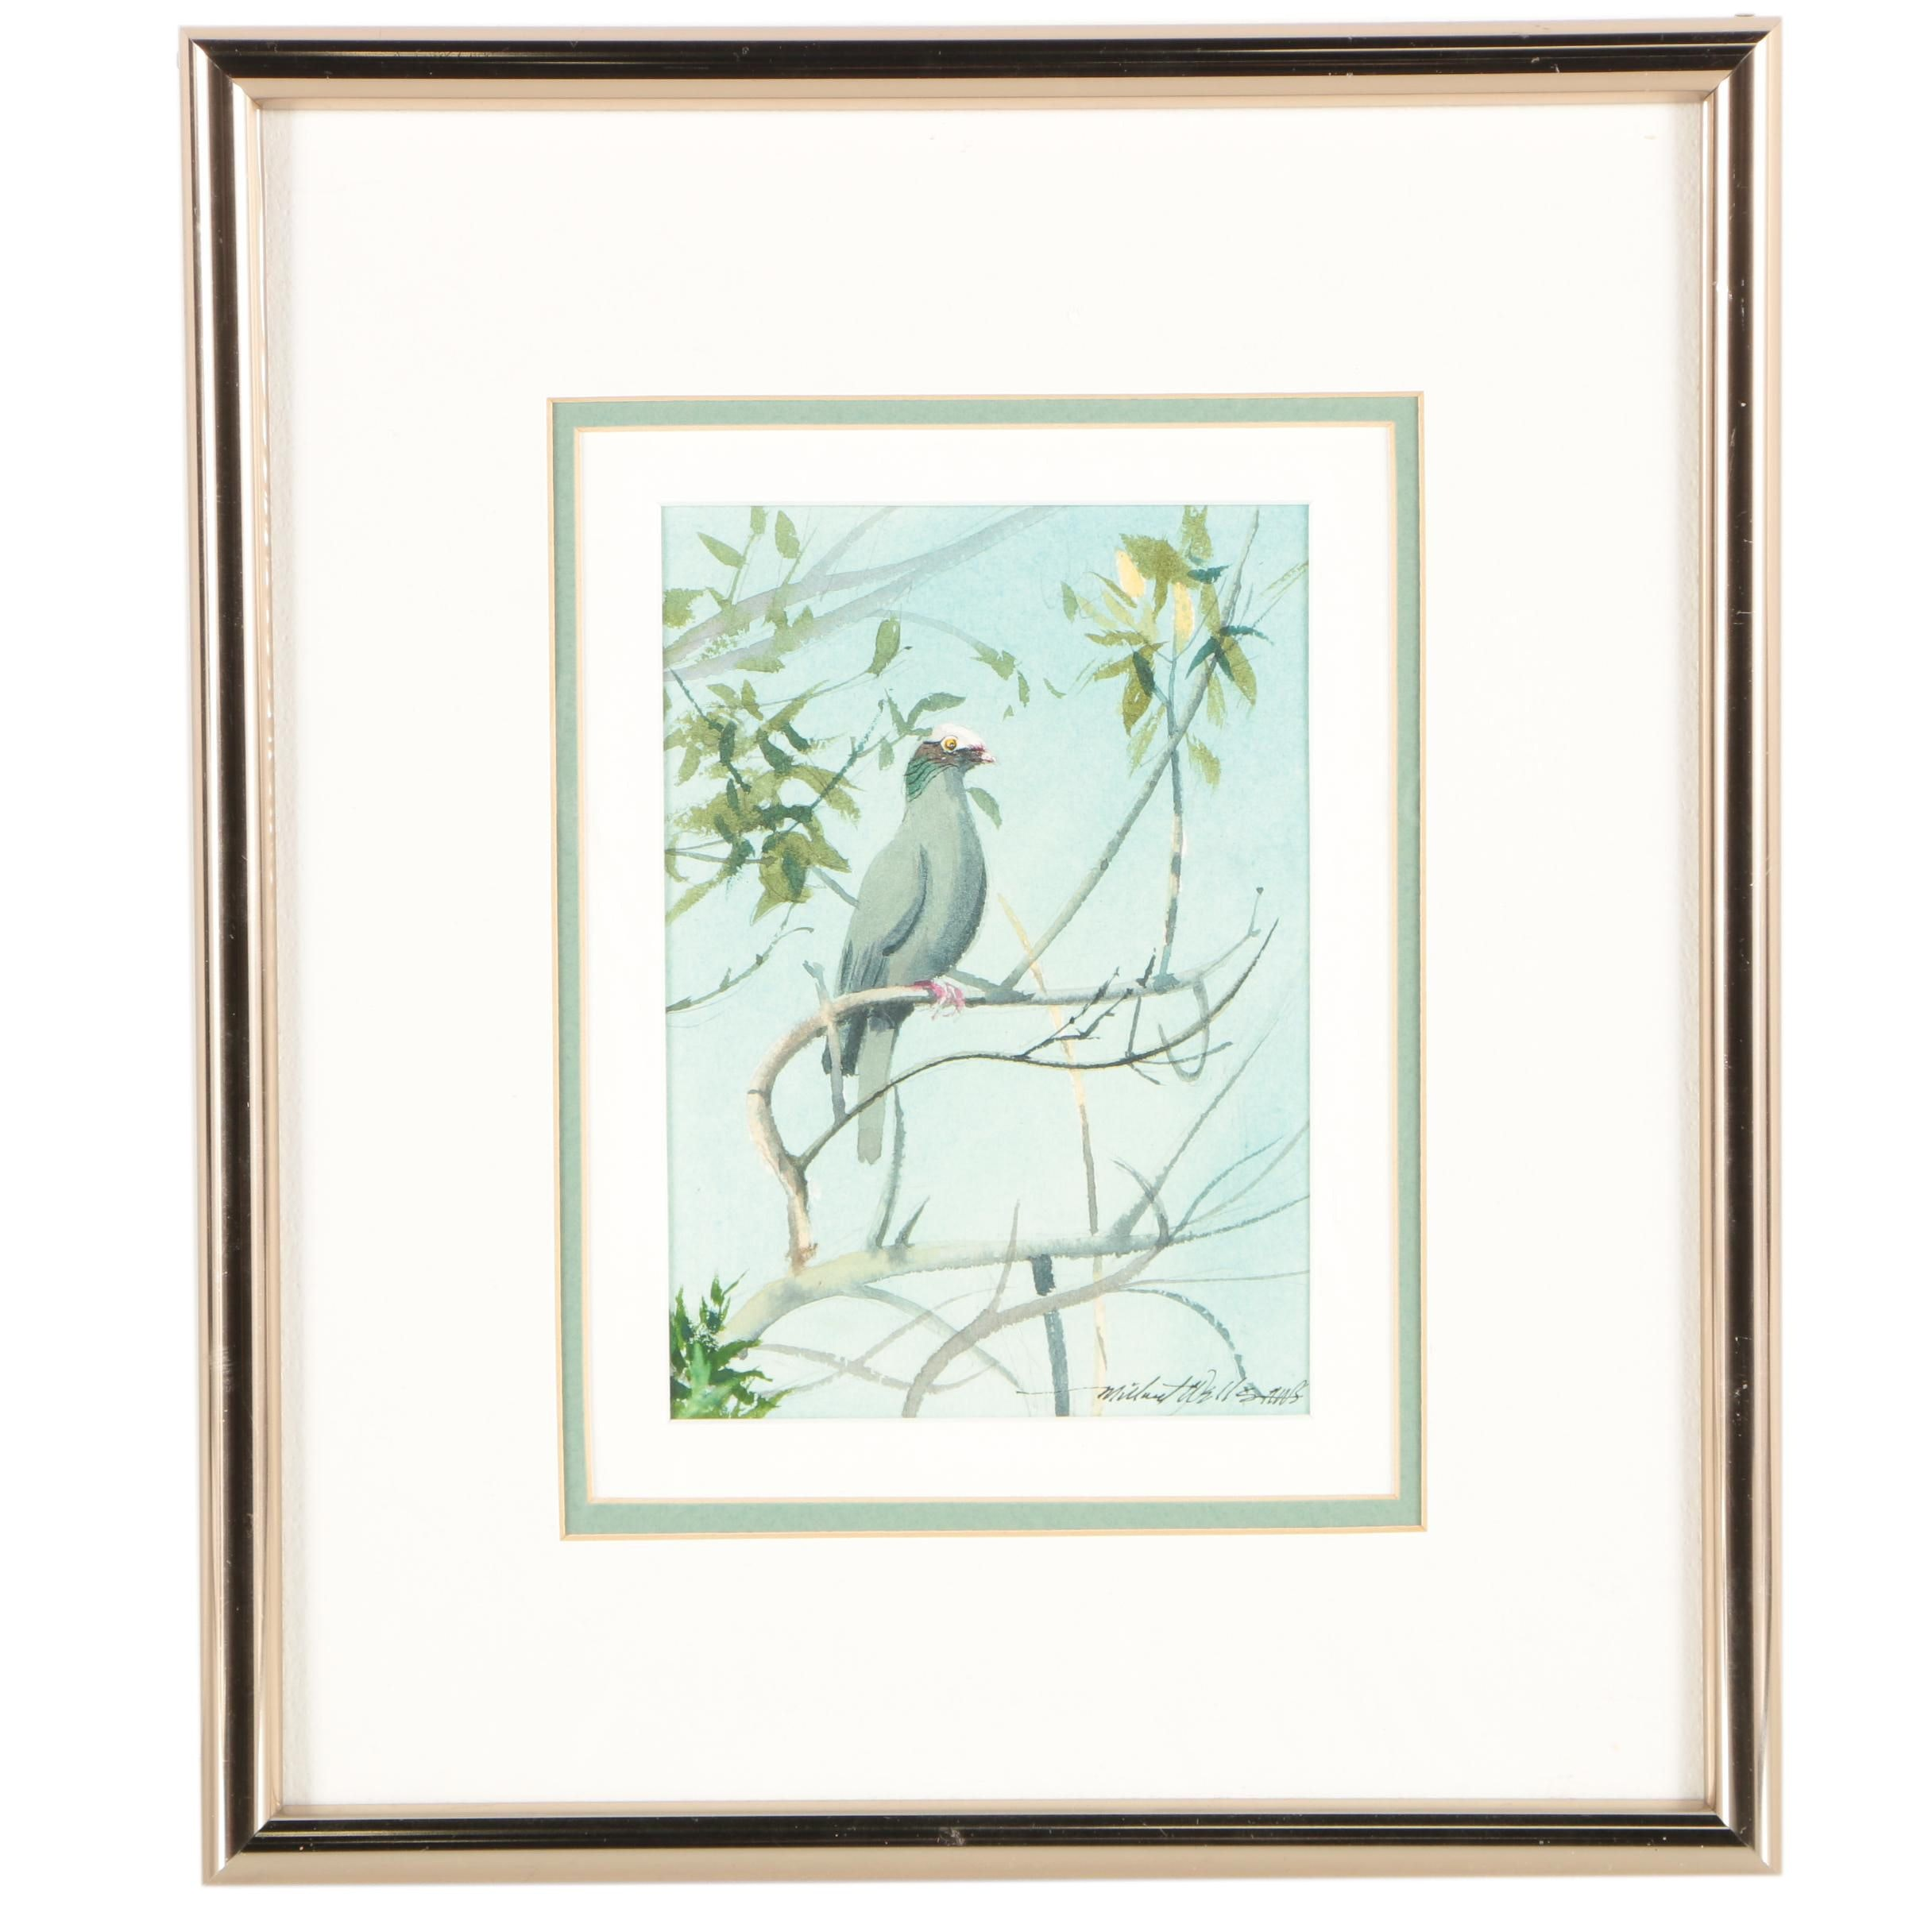 Millicent Wells Watercolor Painting of a Bird